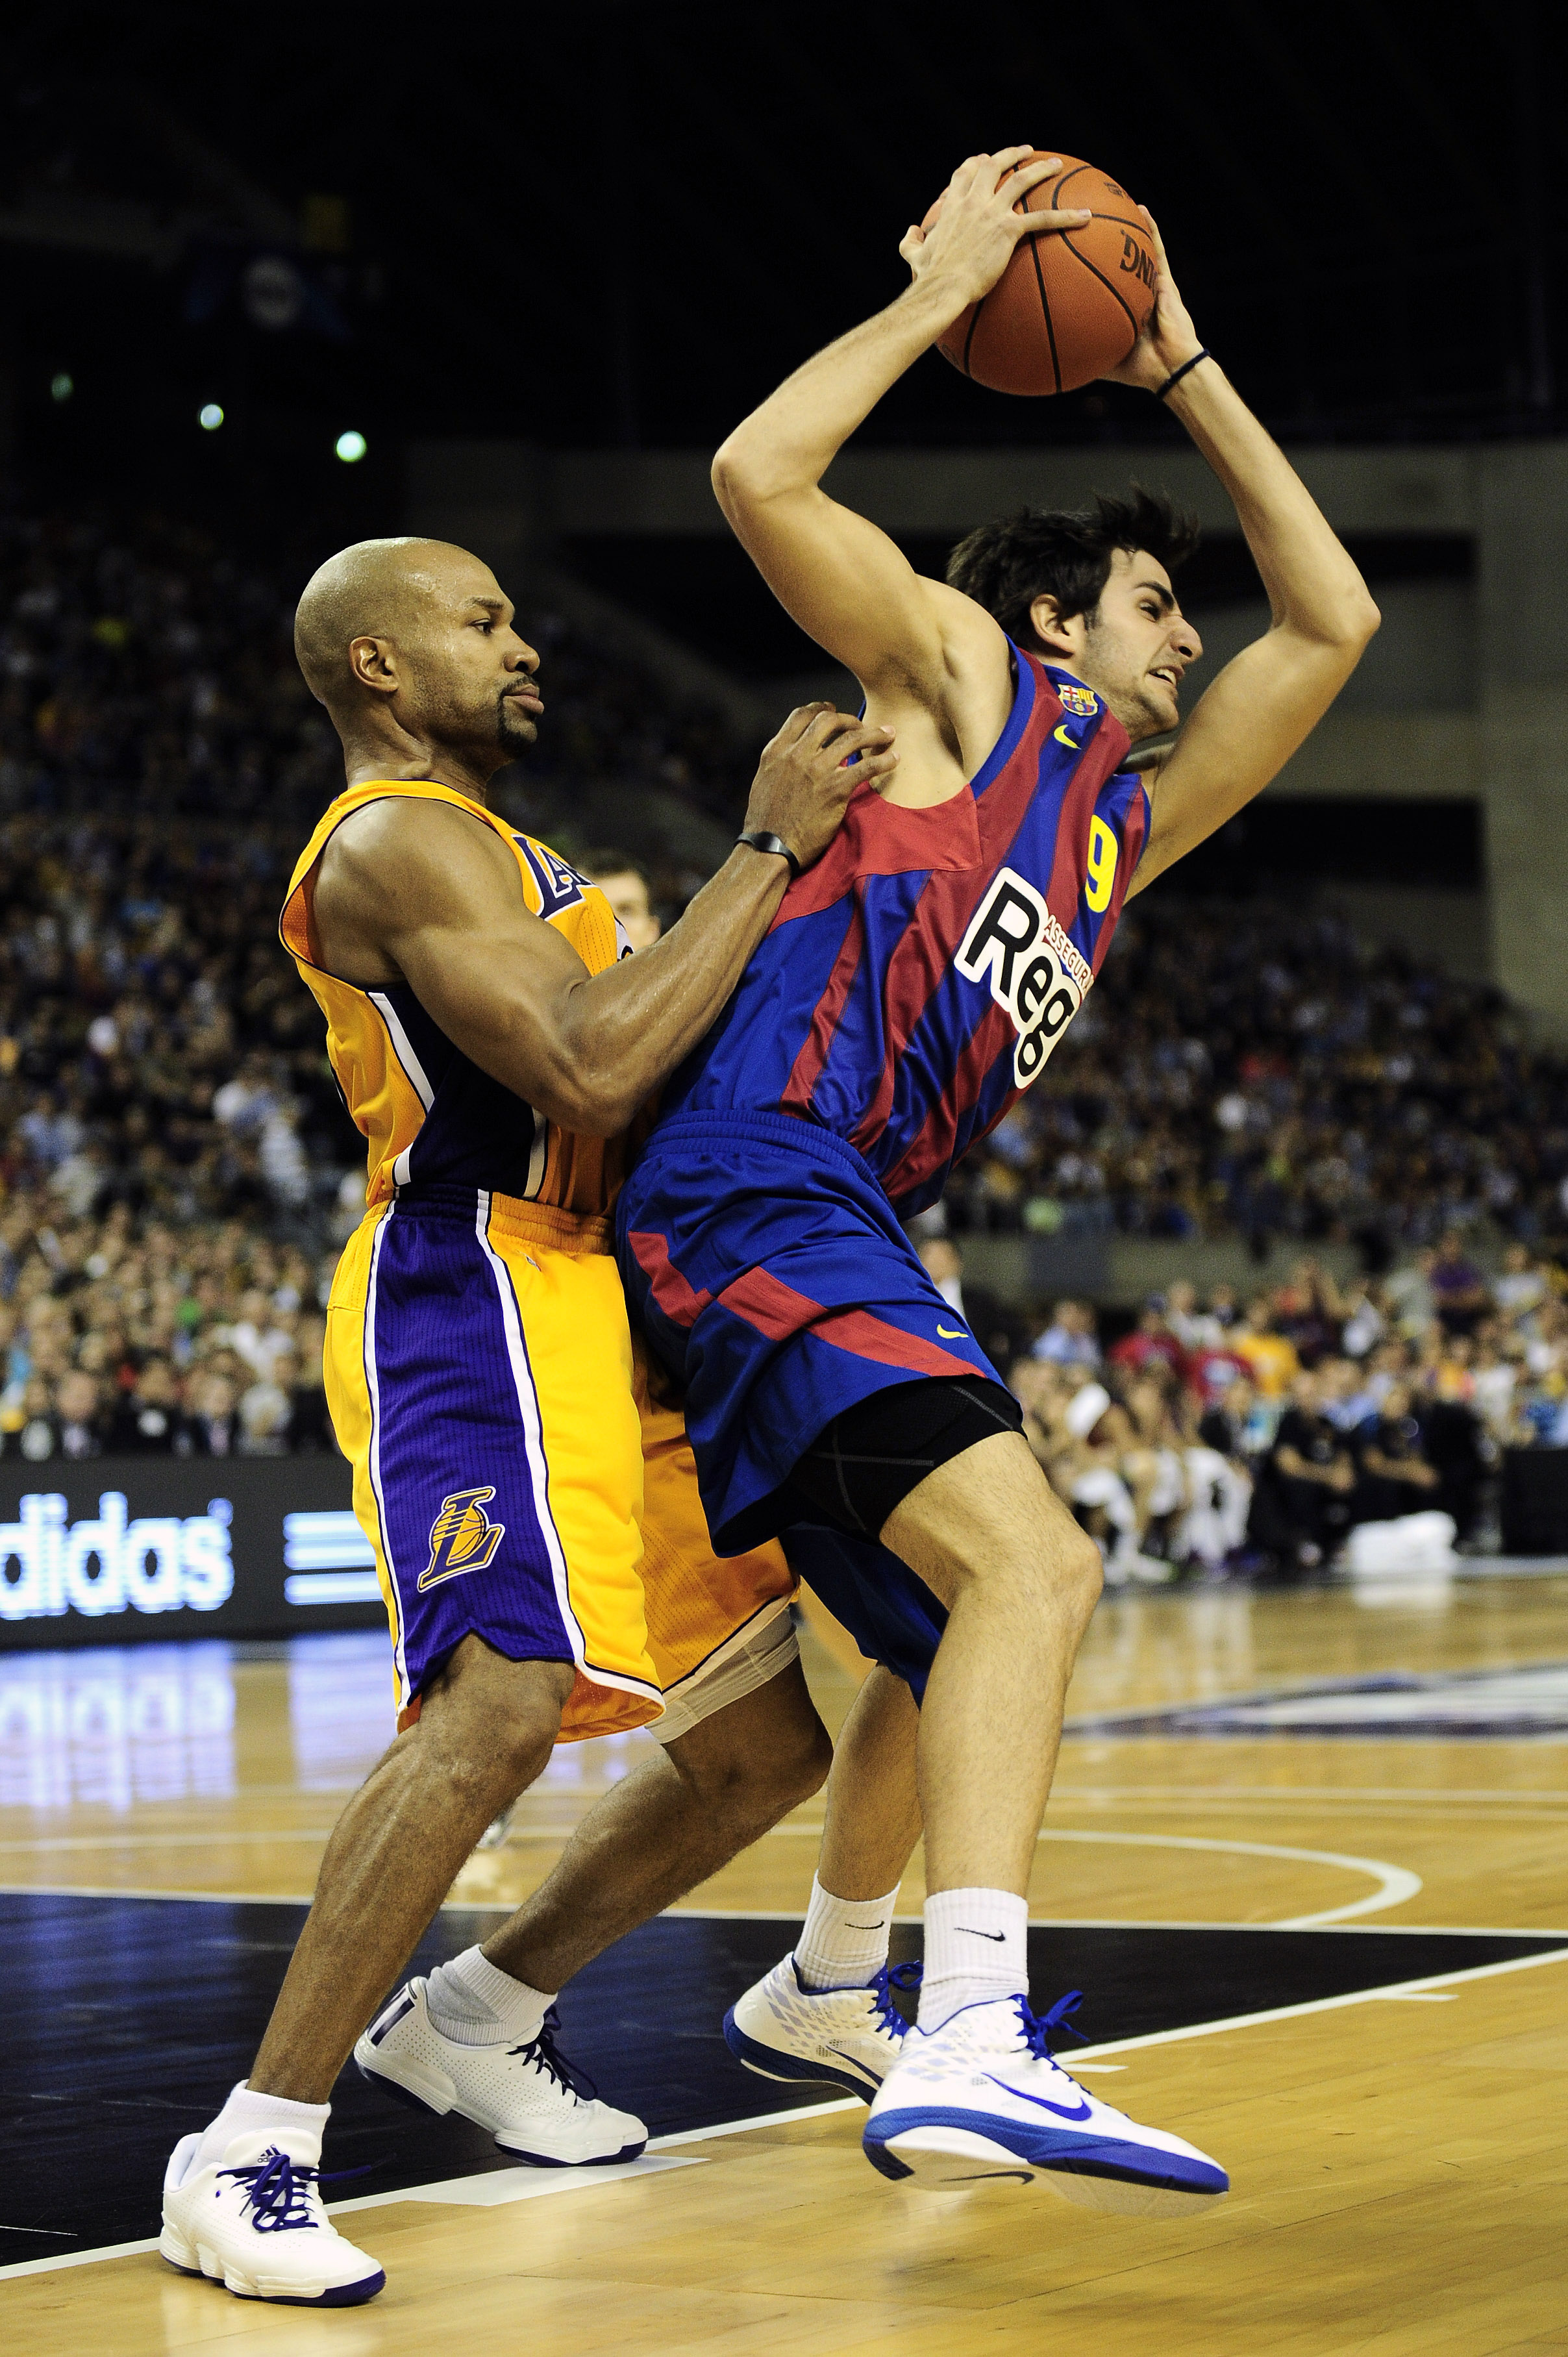 BARCELONA, SPAIN - OCTOBER 07:  Ricky Rubio (R) #9 of the FC Barcelona duels  for a ball against Derek Fisher #2 of the Los Angeles Lakers during the NBA Europe Live match between Los Angeles Lakers and Regal FC Barcelona at the at Palau Blaugrana on Octo